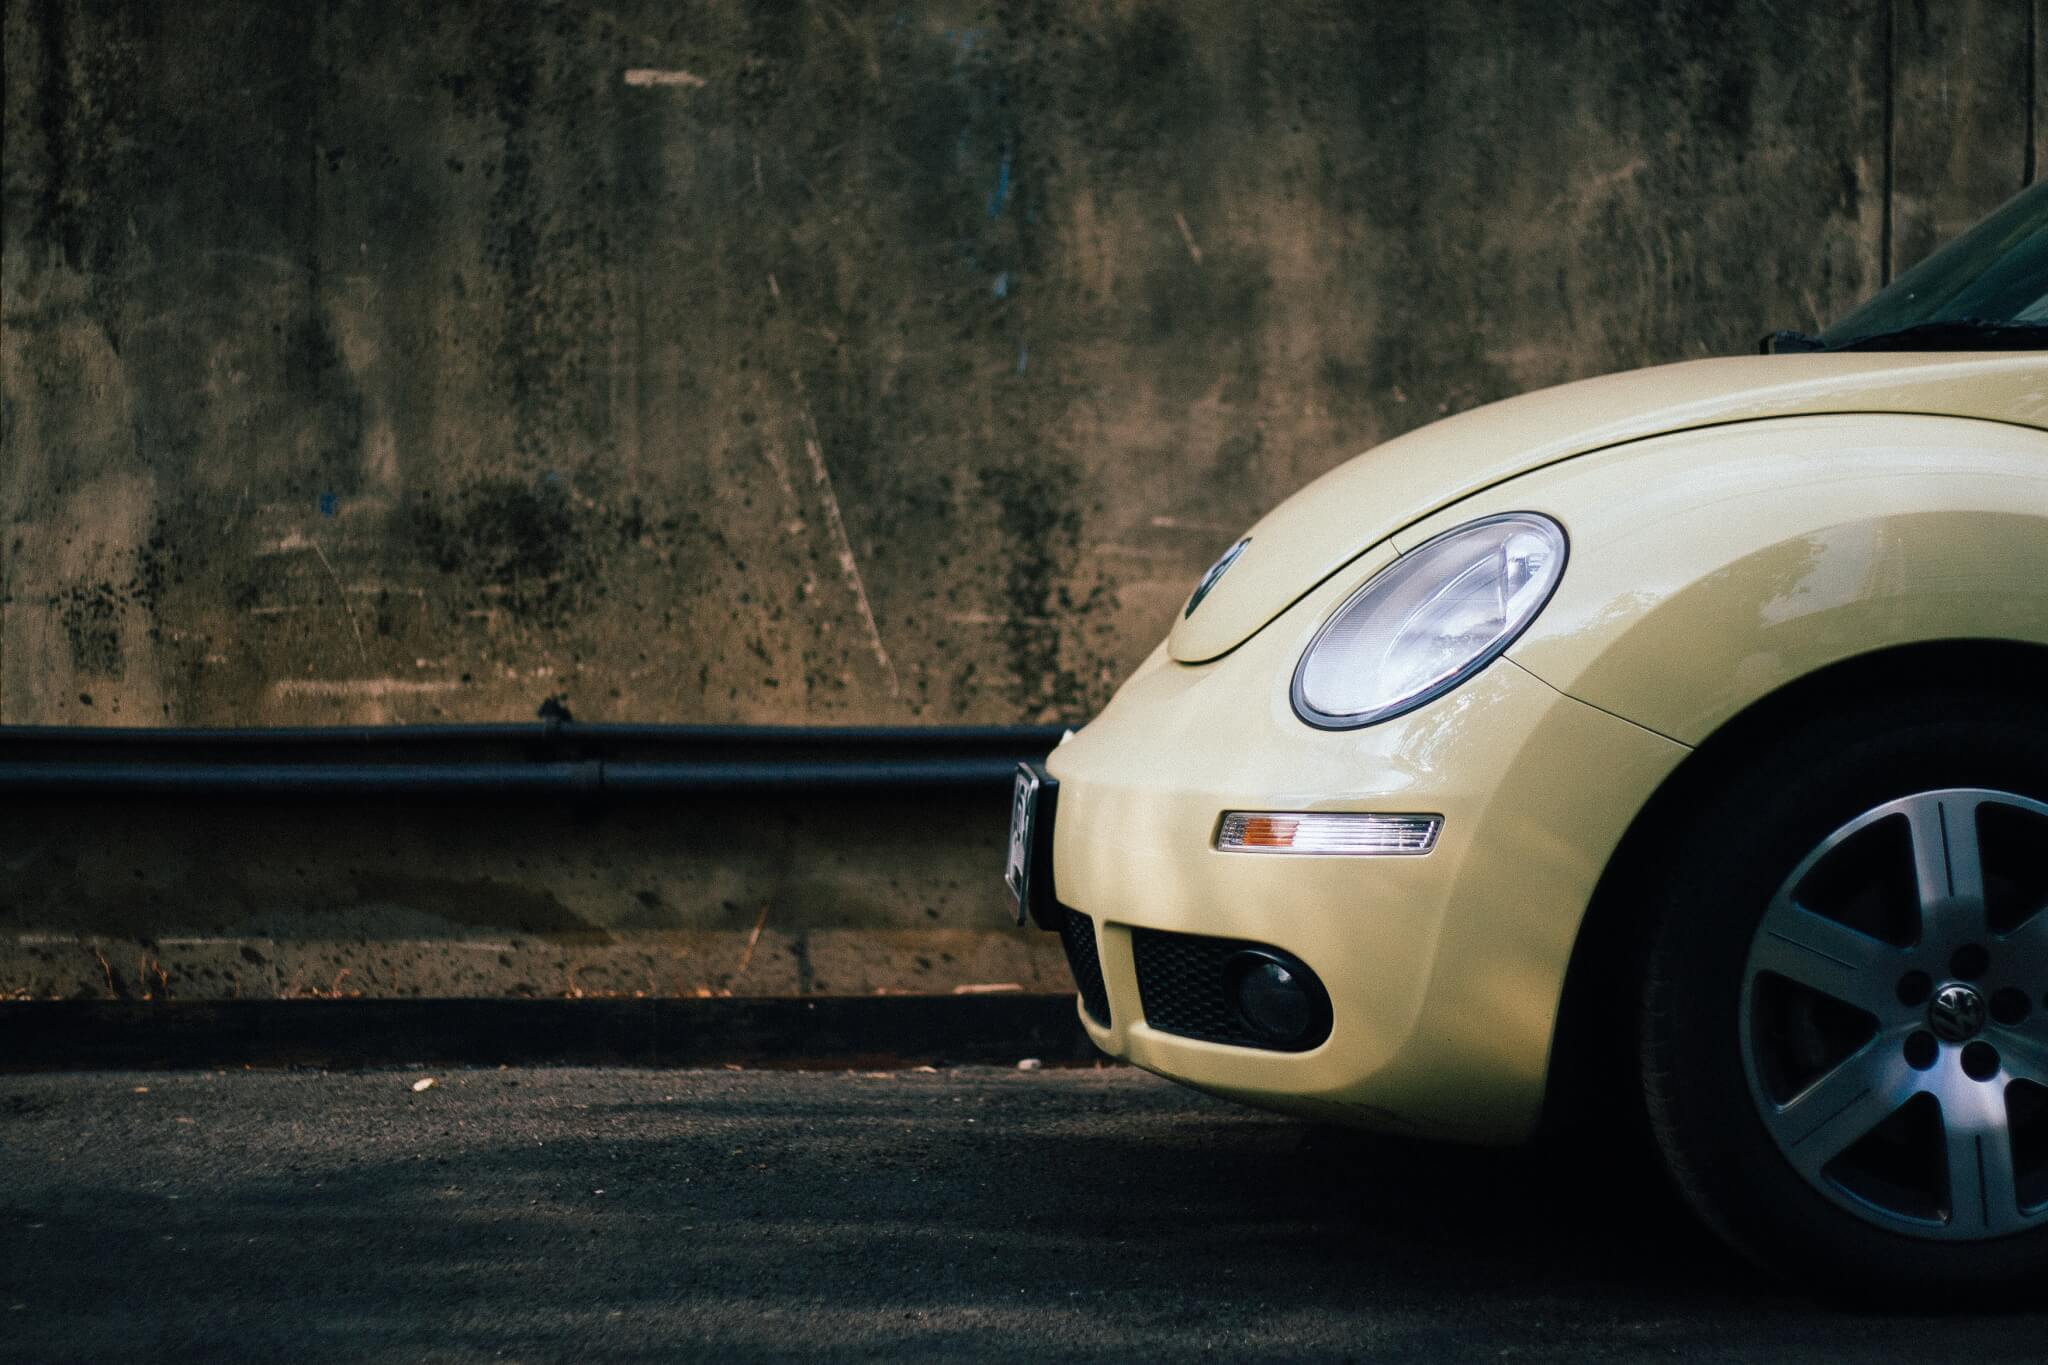 profile of the front end of VW bug